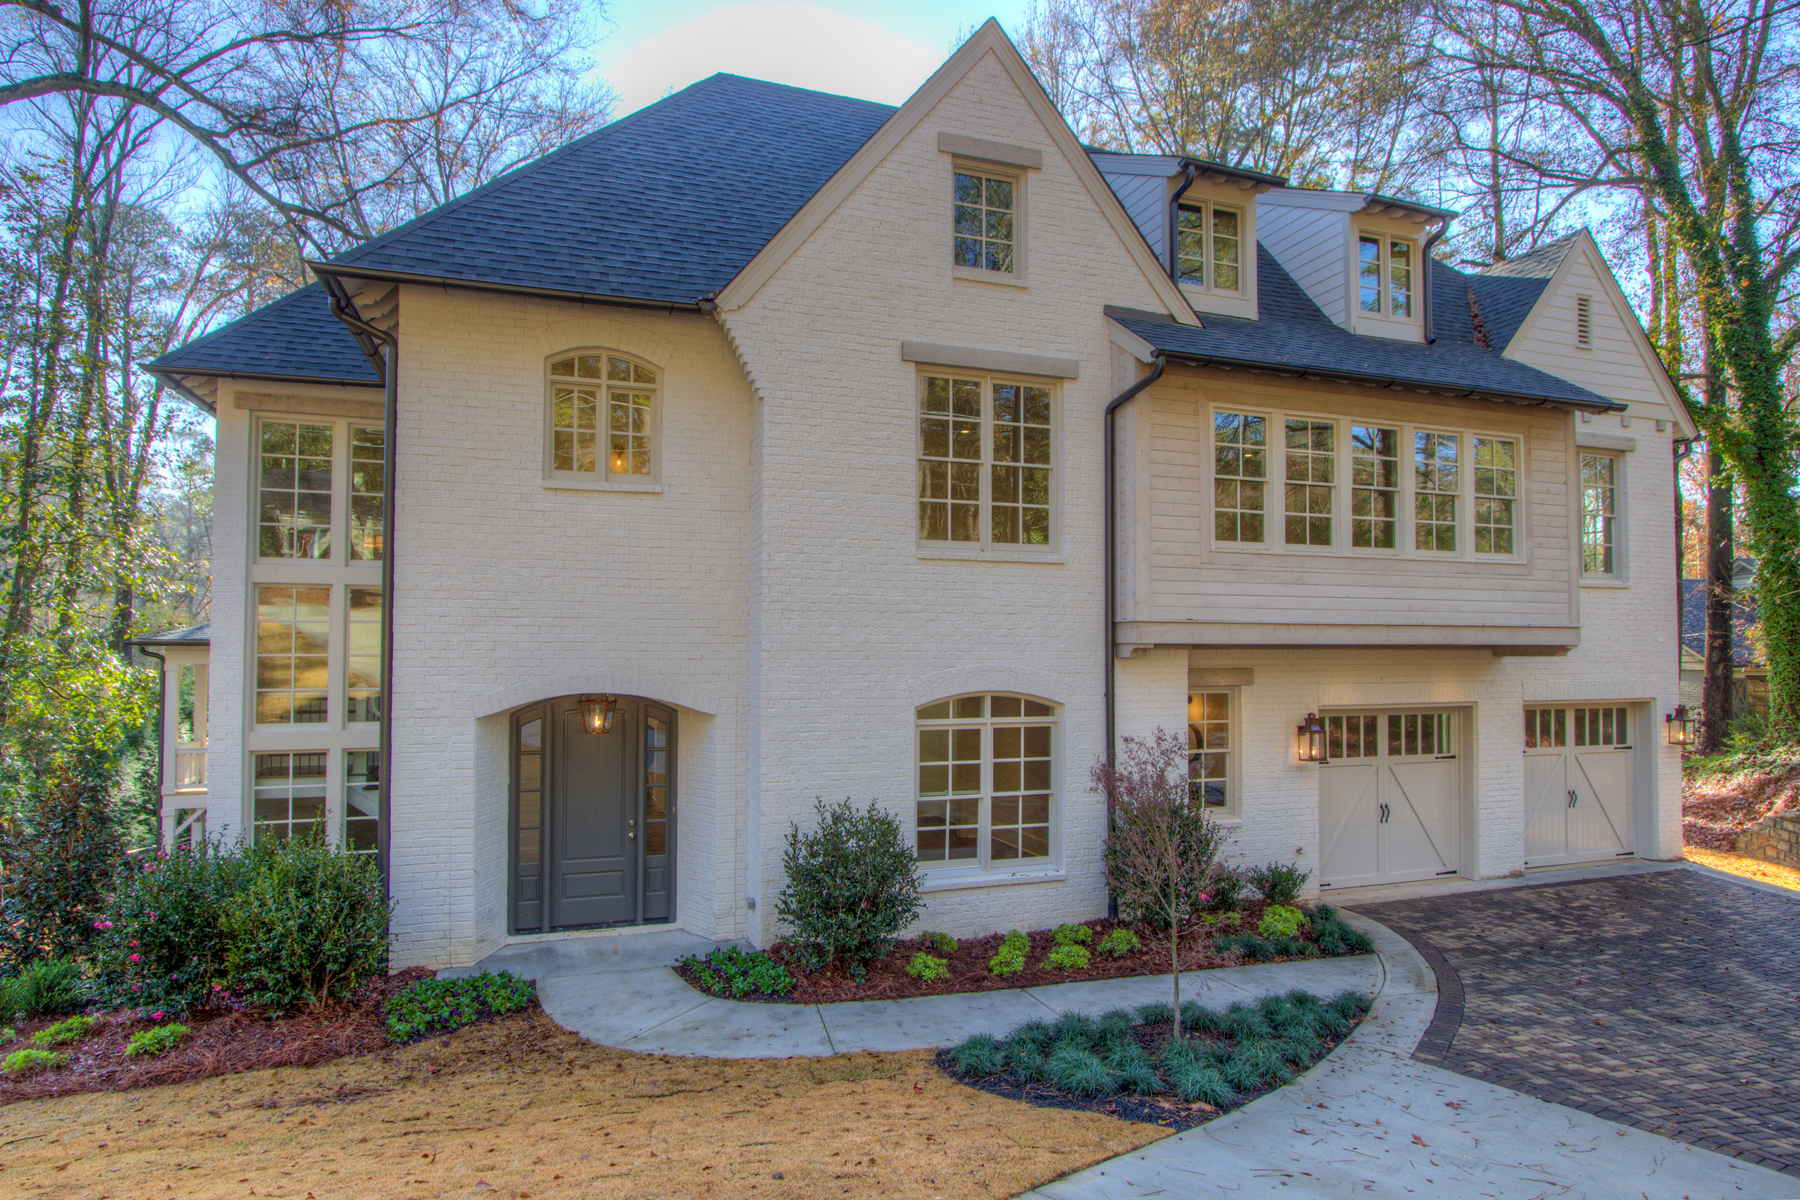 Maison unifamiliale pour l Vente à Beautiful New Construction In Chastain Park 496 Broadland Road NW Tuxedo Park, Atlanta, Georgia, 30342 États-Unis